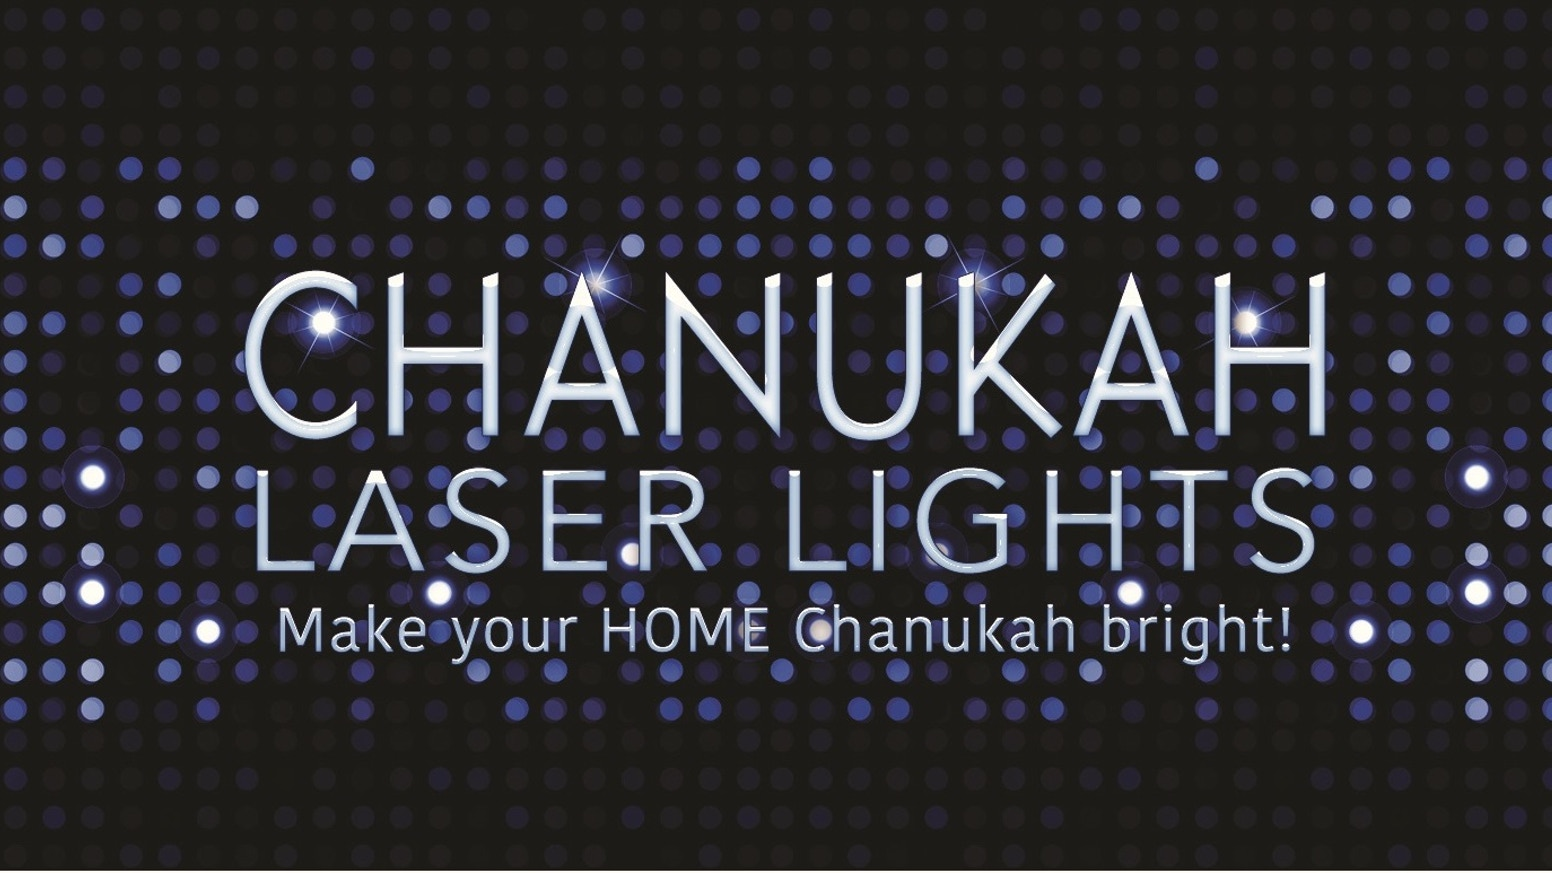 Chanukah Laser Lights By Chanukah Lights Llc Kickstarter